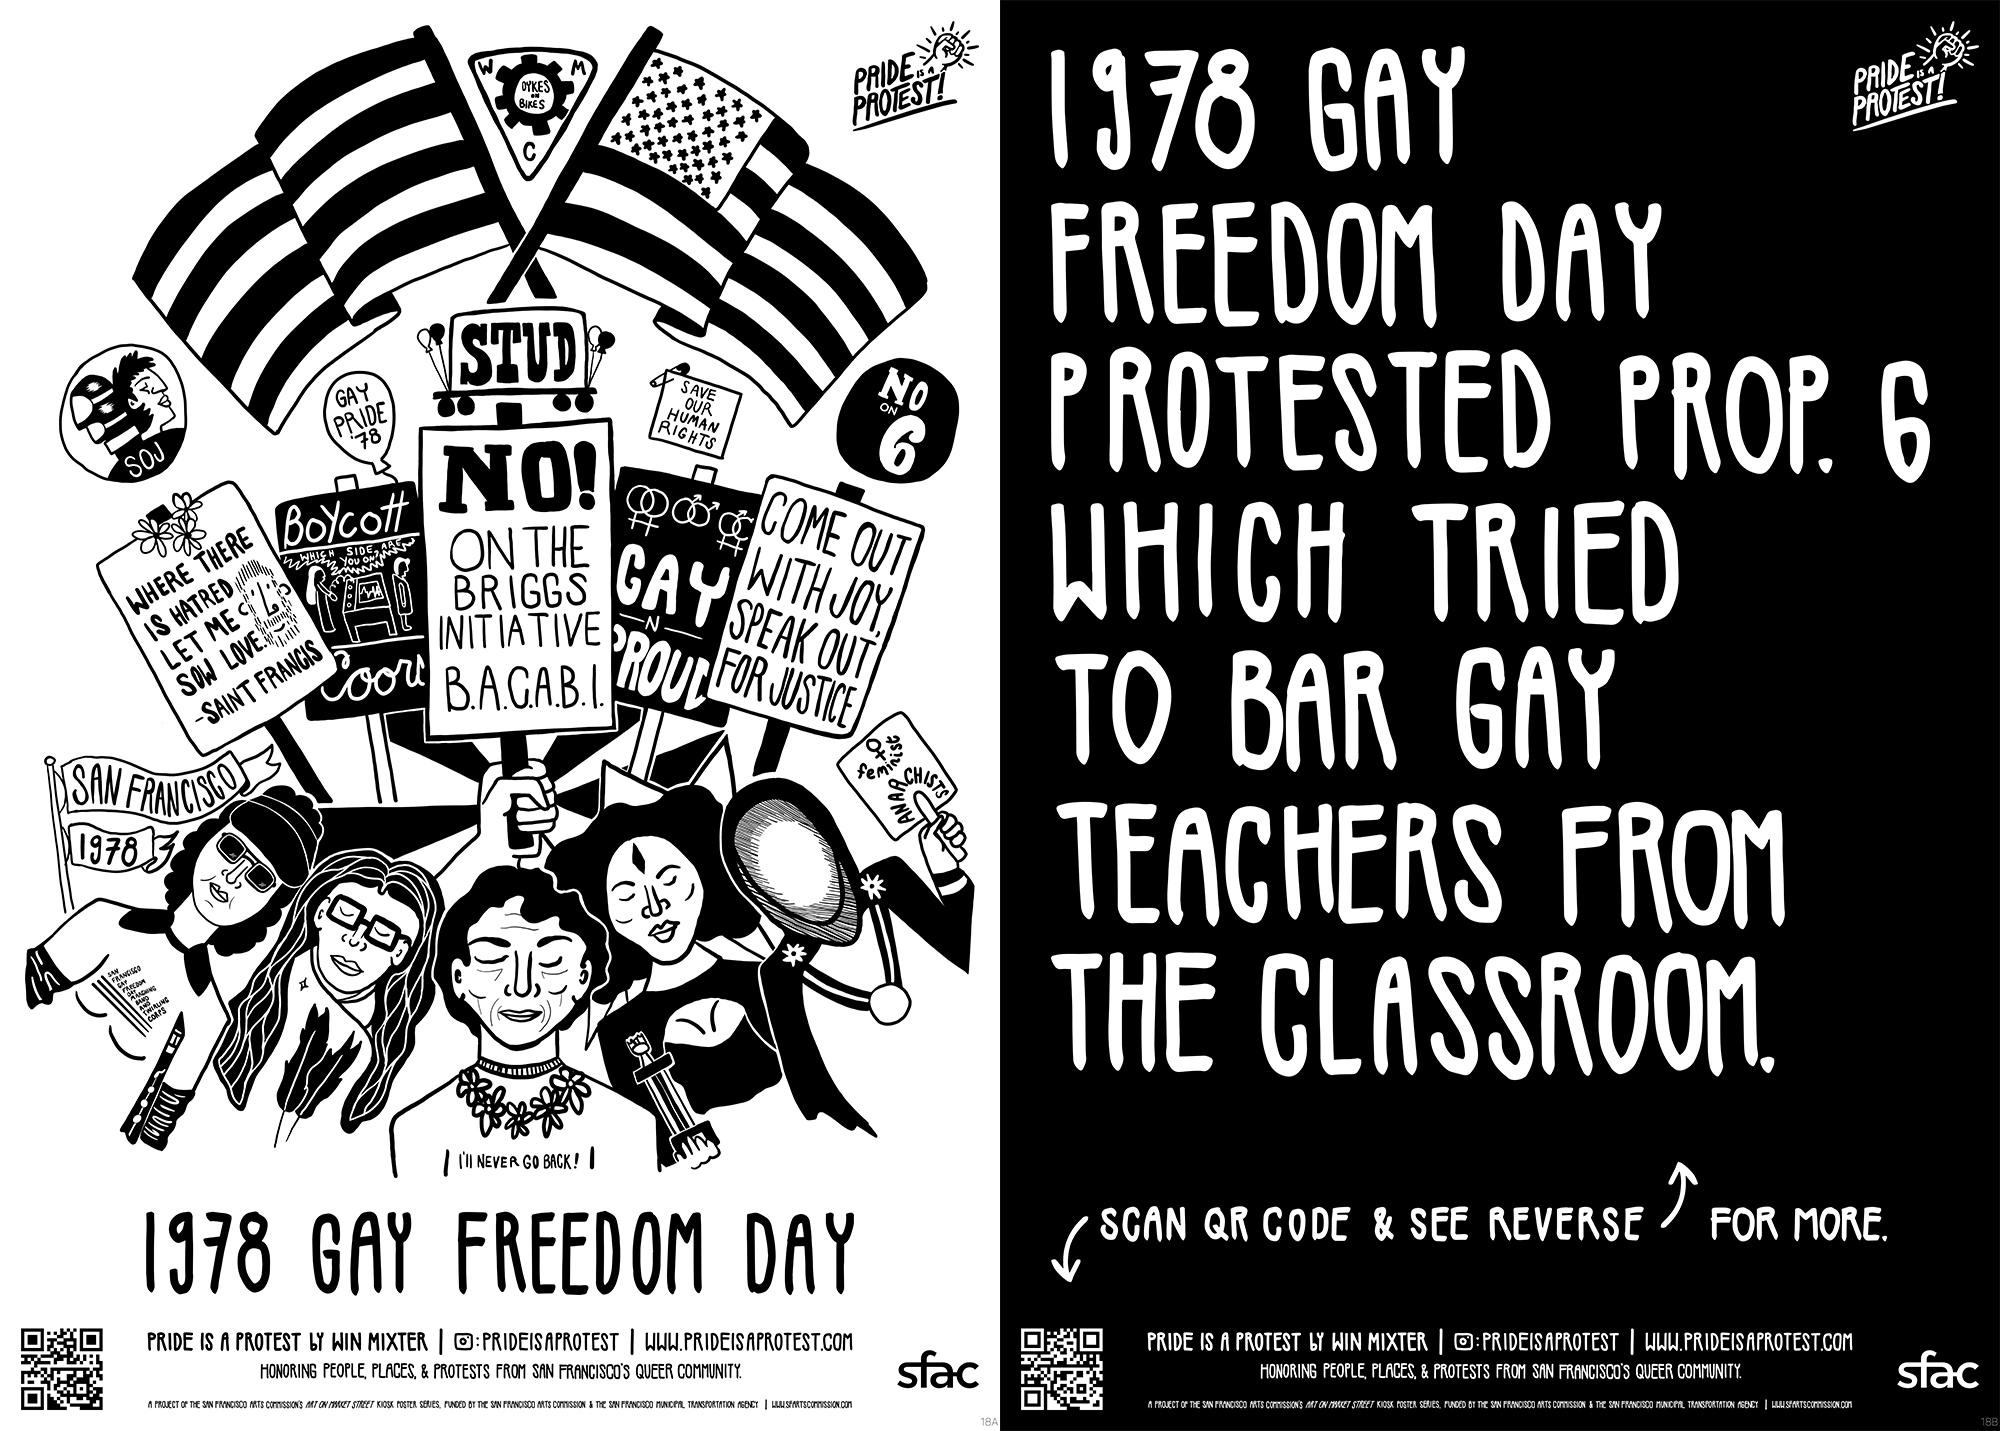 Black and White Art poster design in muni bus kiosk. 1978 Gay Freedom Day Parade